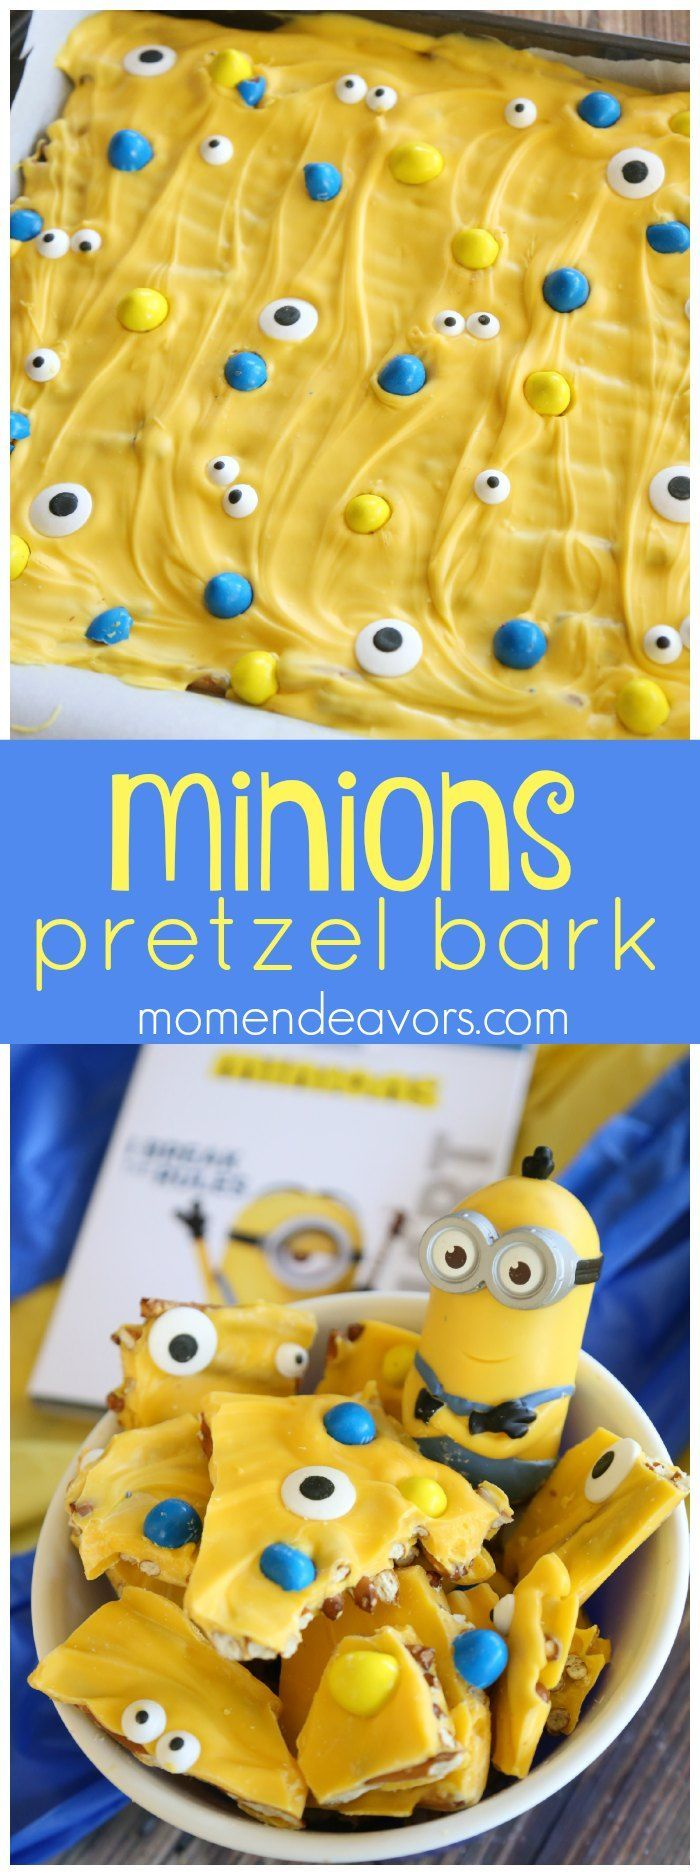 Pretzel Bark - perfect for a Minions or Despicable Me Movie Night or Kids Birthday Party!